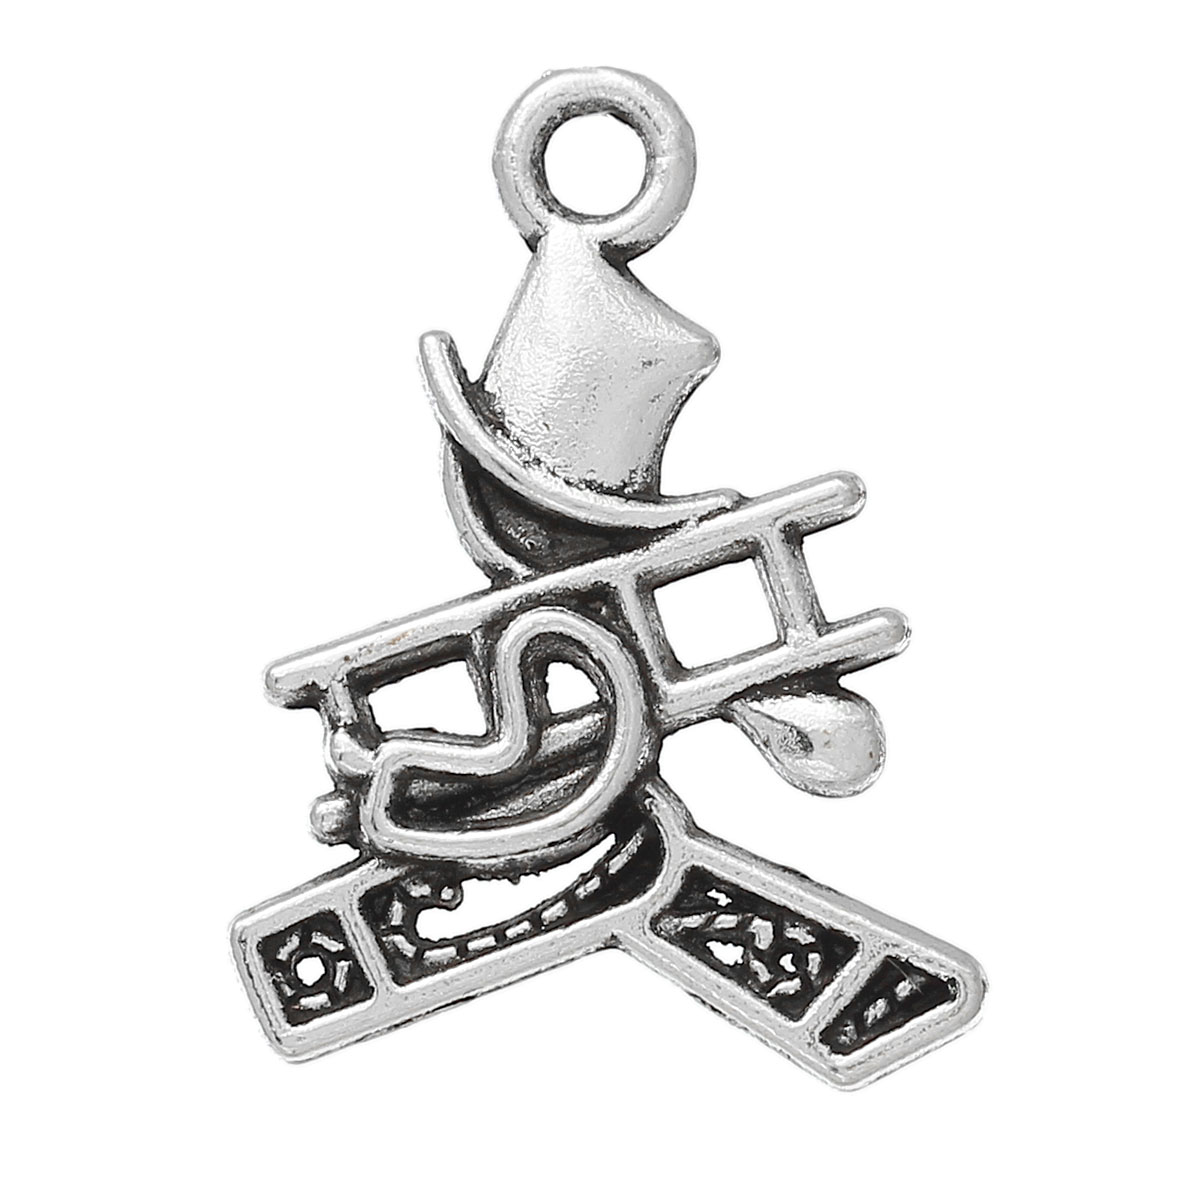 "Zinc metal alloy Charm Pendants Human Antique Silver 21.0mm( 7/8"") x 16.0mm( 5/8""), 4 PCs 2015 new(China (Mainland))"